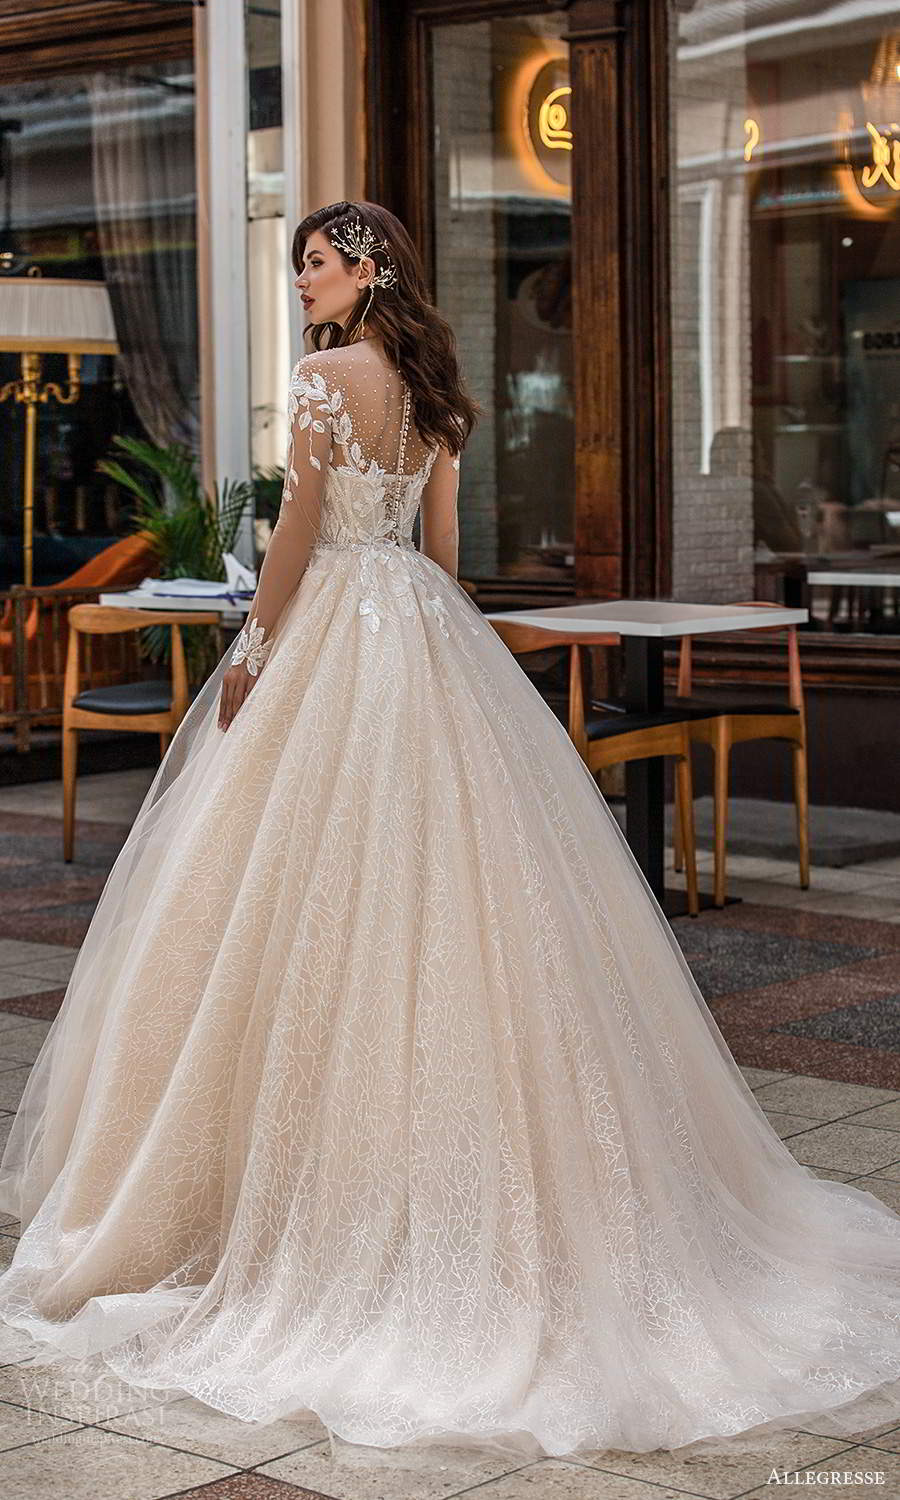 allegresse 2021 bridal illusion long sleeves off shoulder sweetheart neckline embellished bodice a line ball gown wedding dress chapel train blush champagne (9) bv